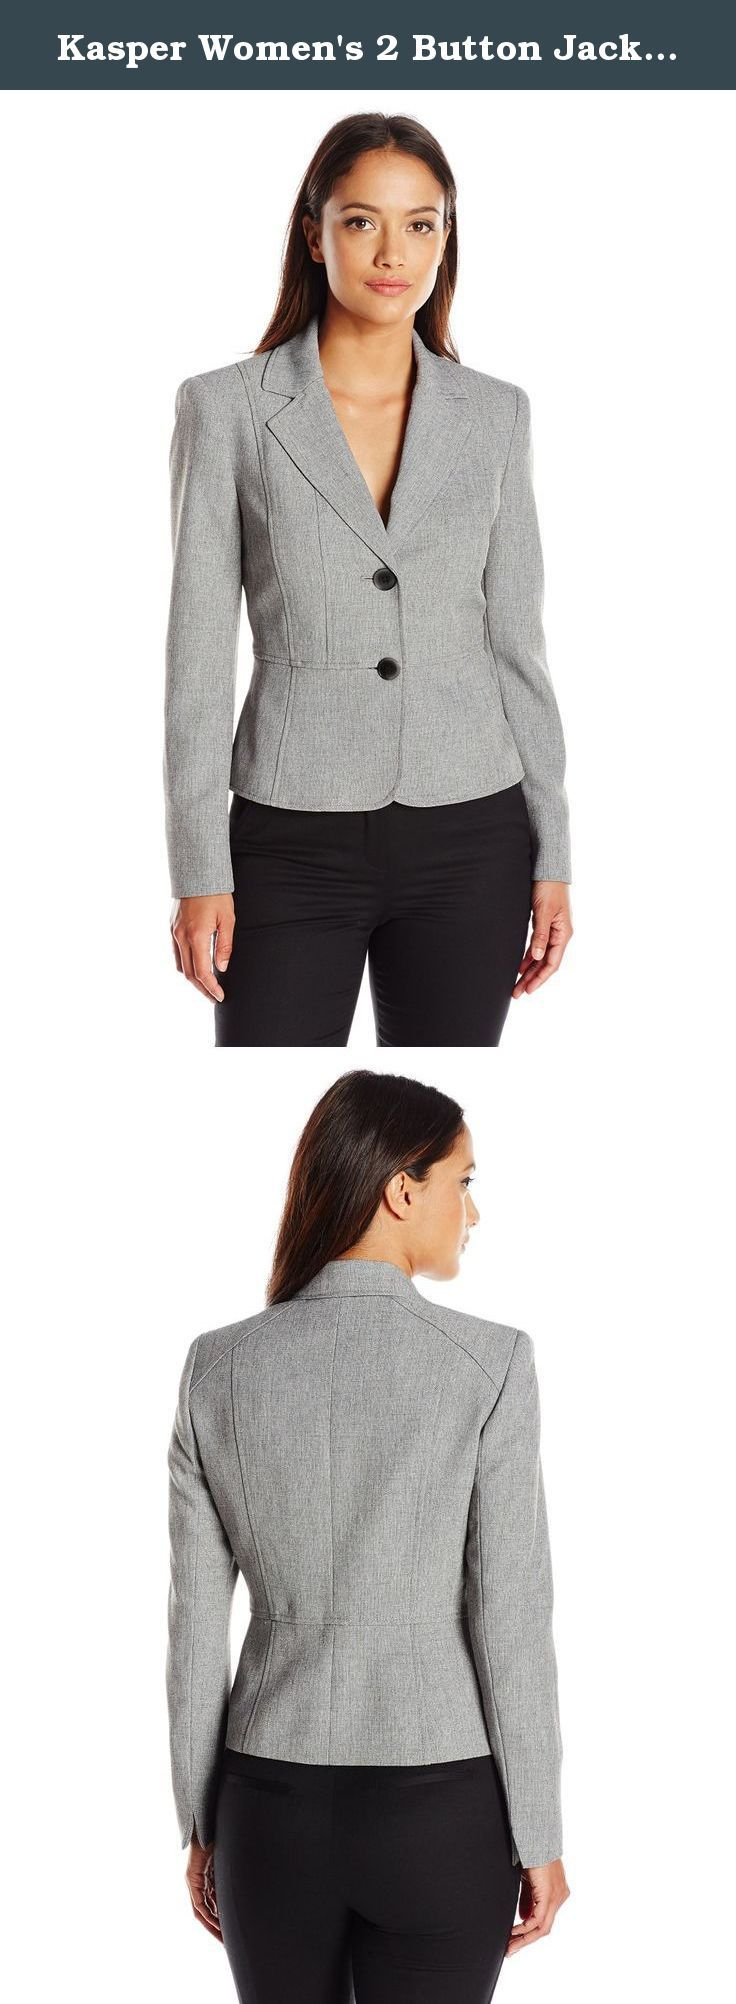 Kasper Women's 2 Button Jacket, Grey/Black, 16 Petite. You will be dressing for success in the two button, cross dyed jacket. This is the perfect jacket for any job interview or business meeting. Pair it with Kasper matching pant or dress for an overall career-ready look.